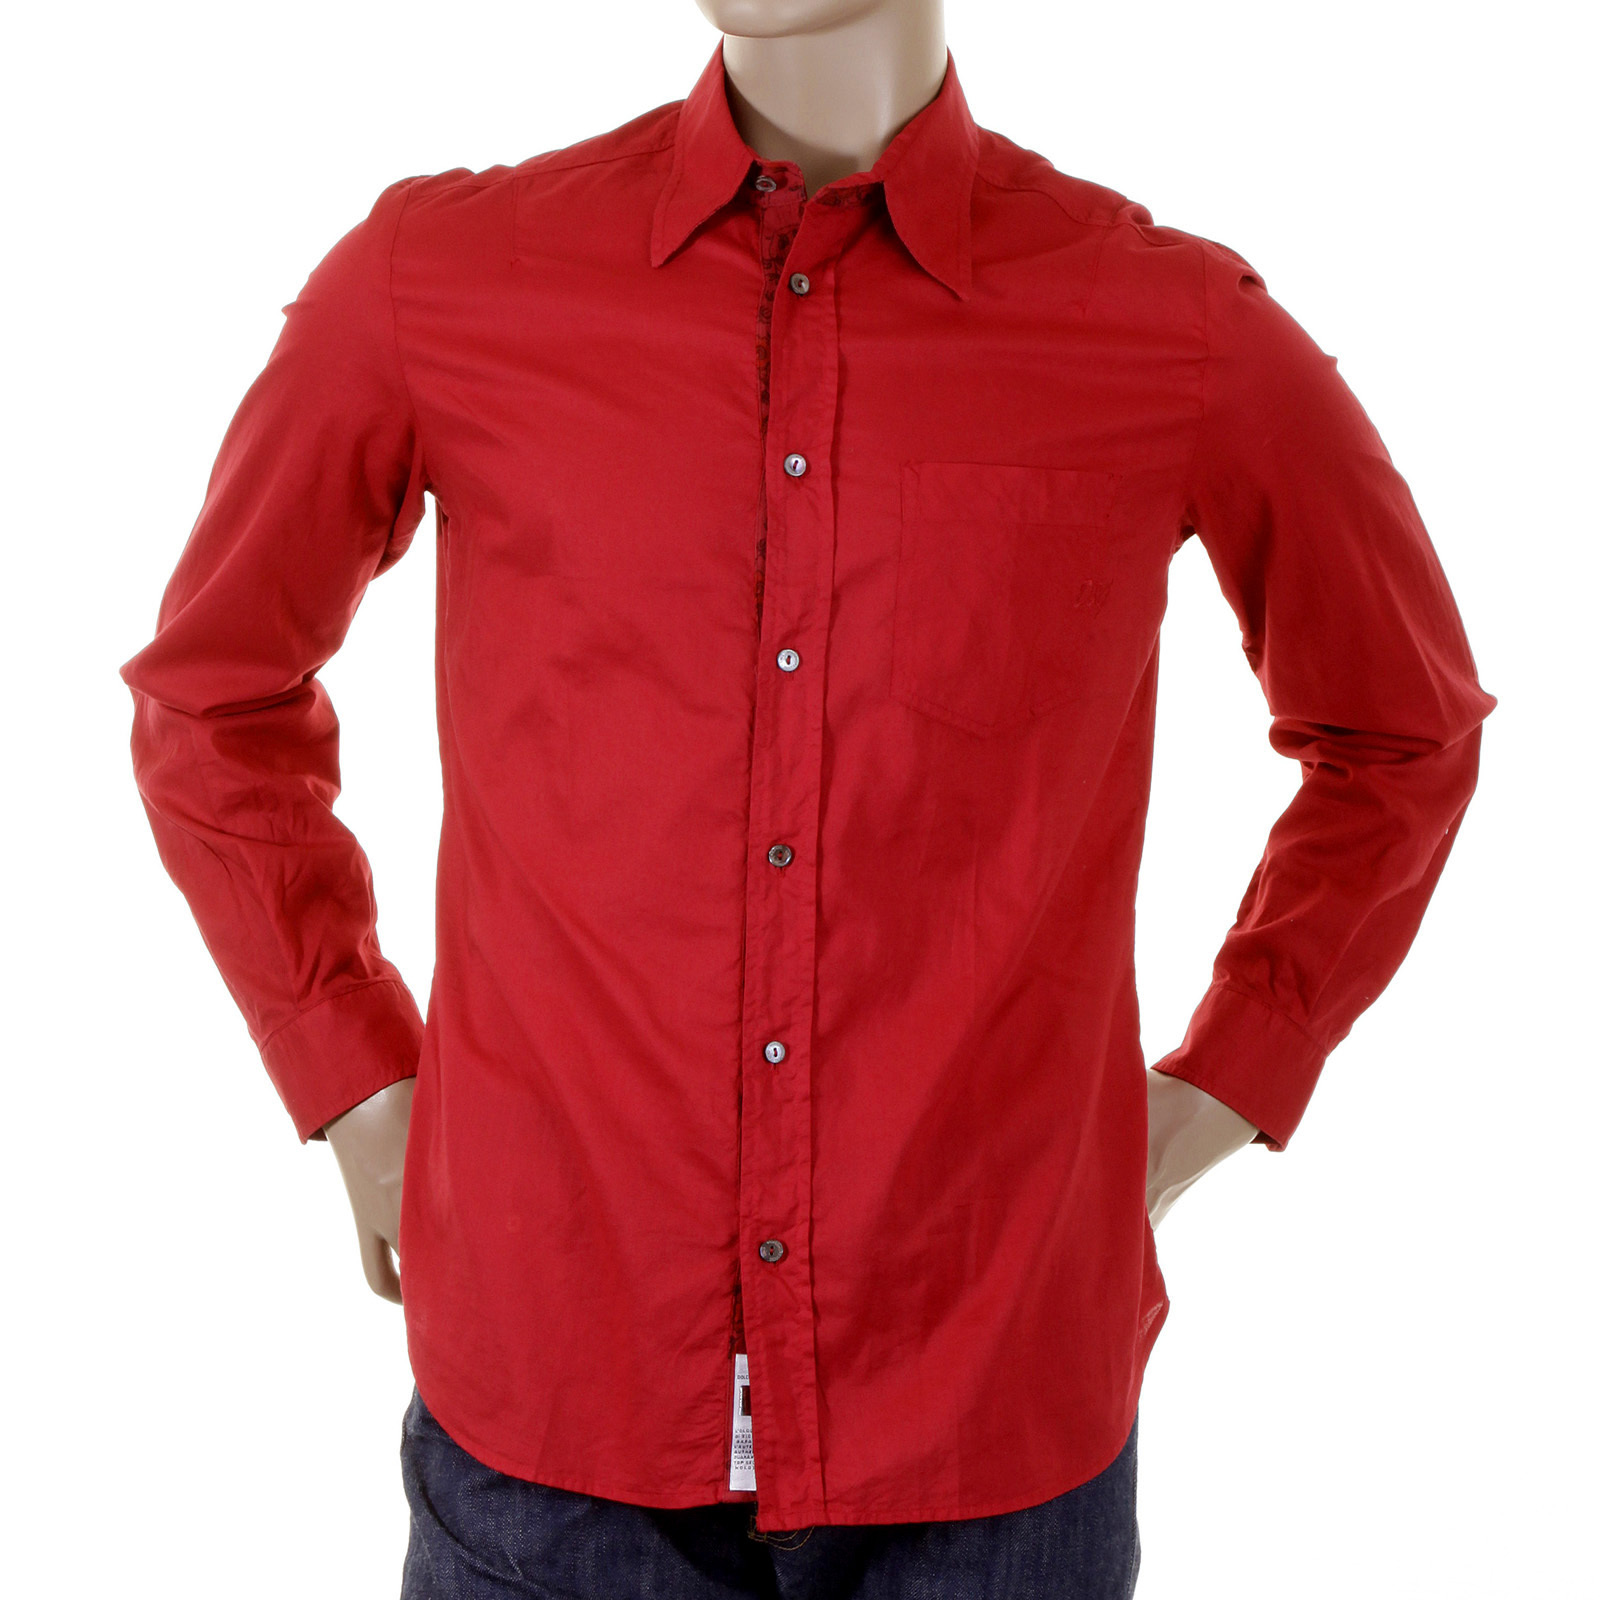 D&G mens shirt Dolce & Gabbana fitted red shirt 1630354011NYR ...